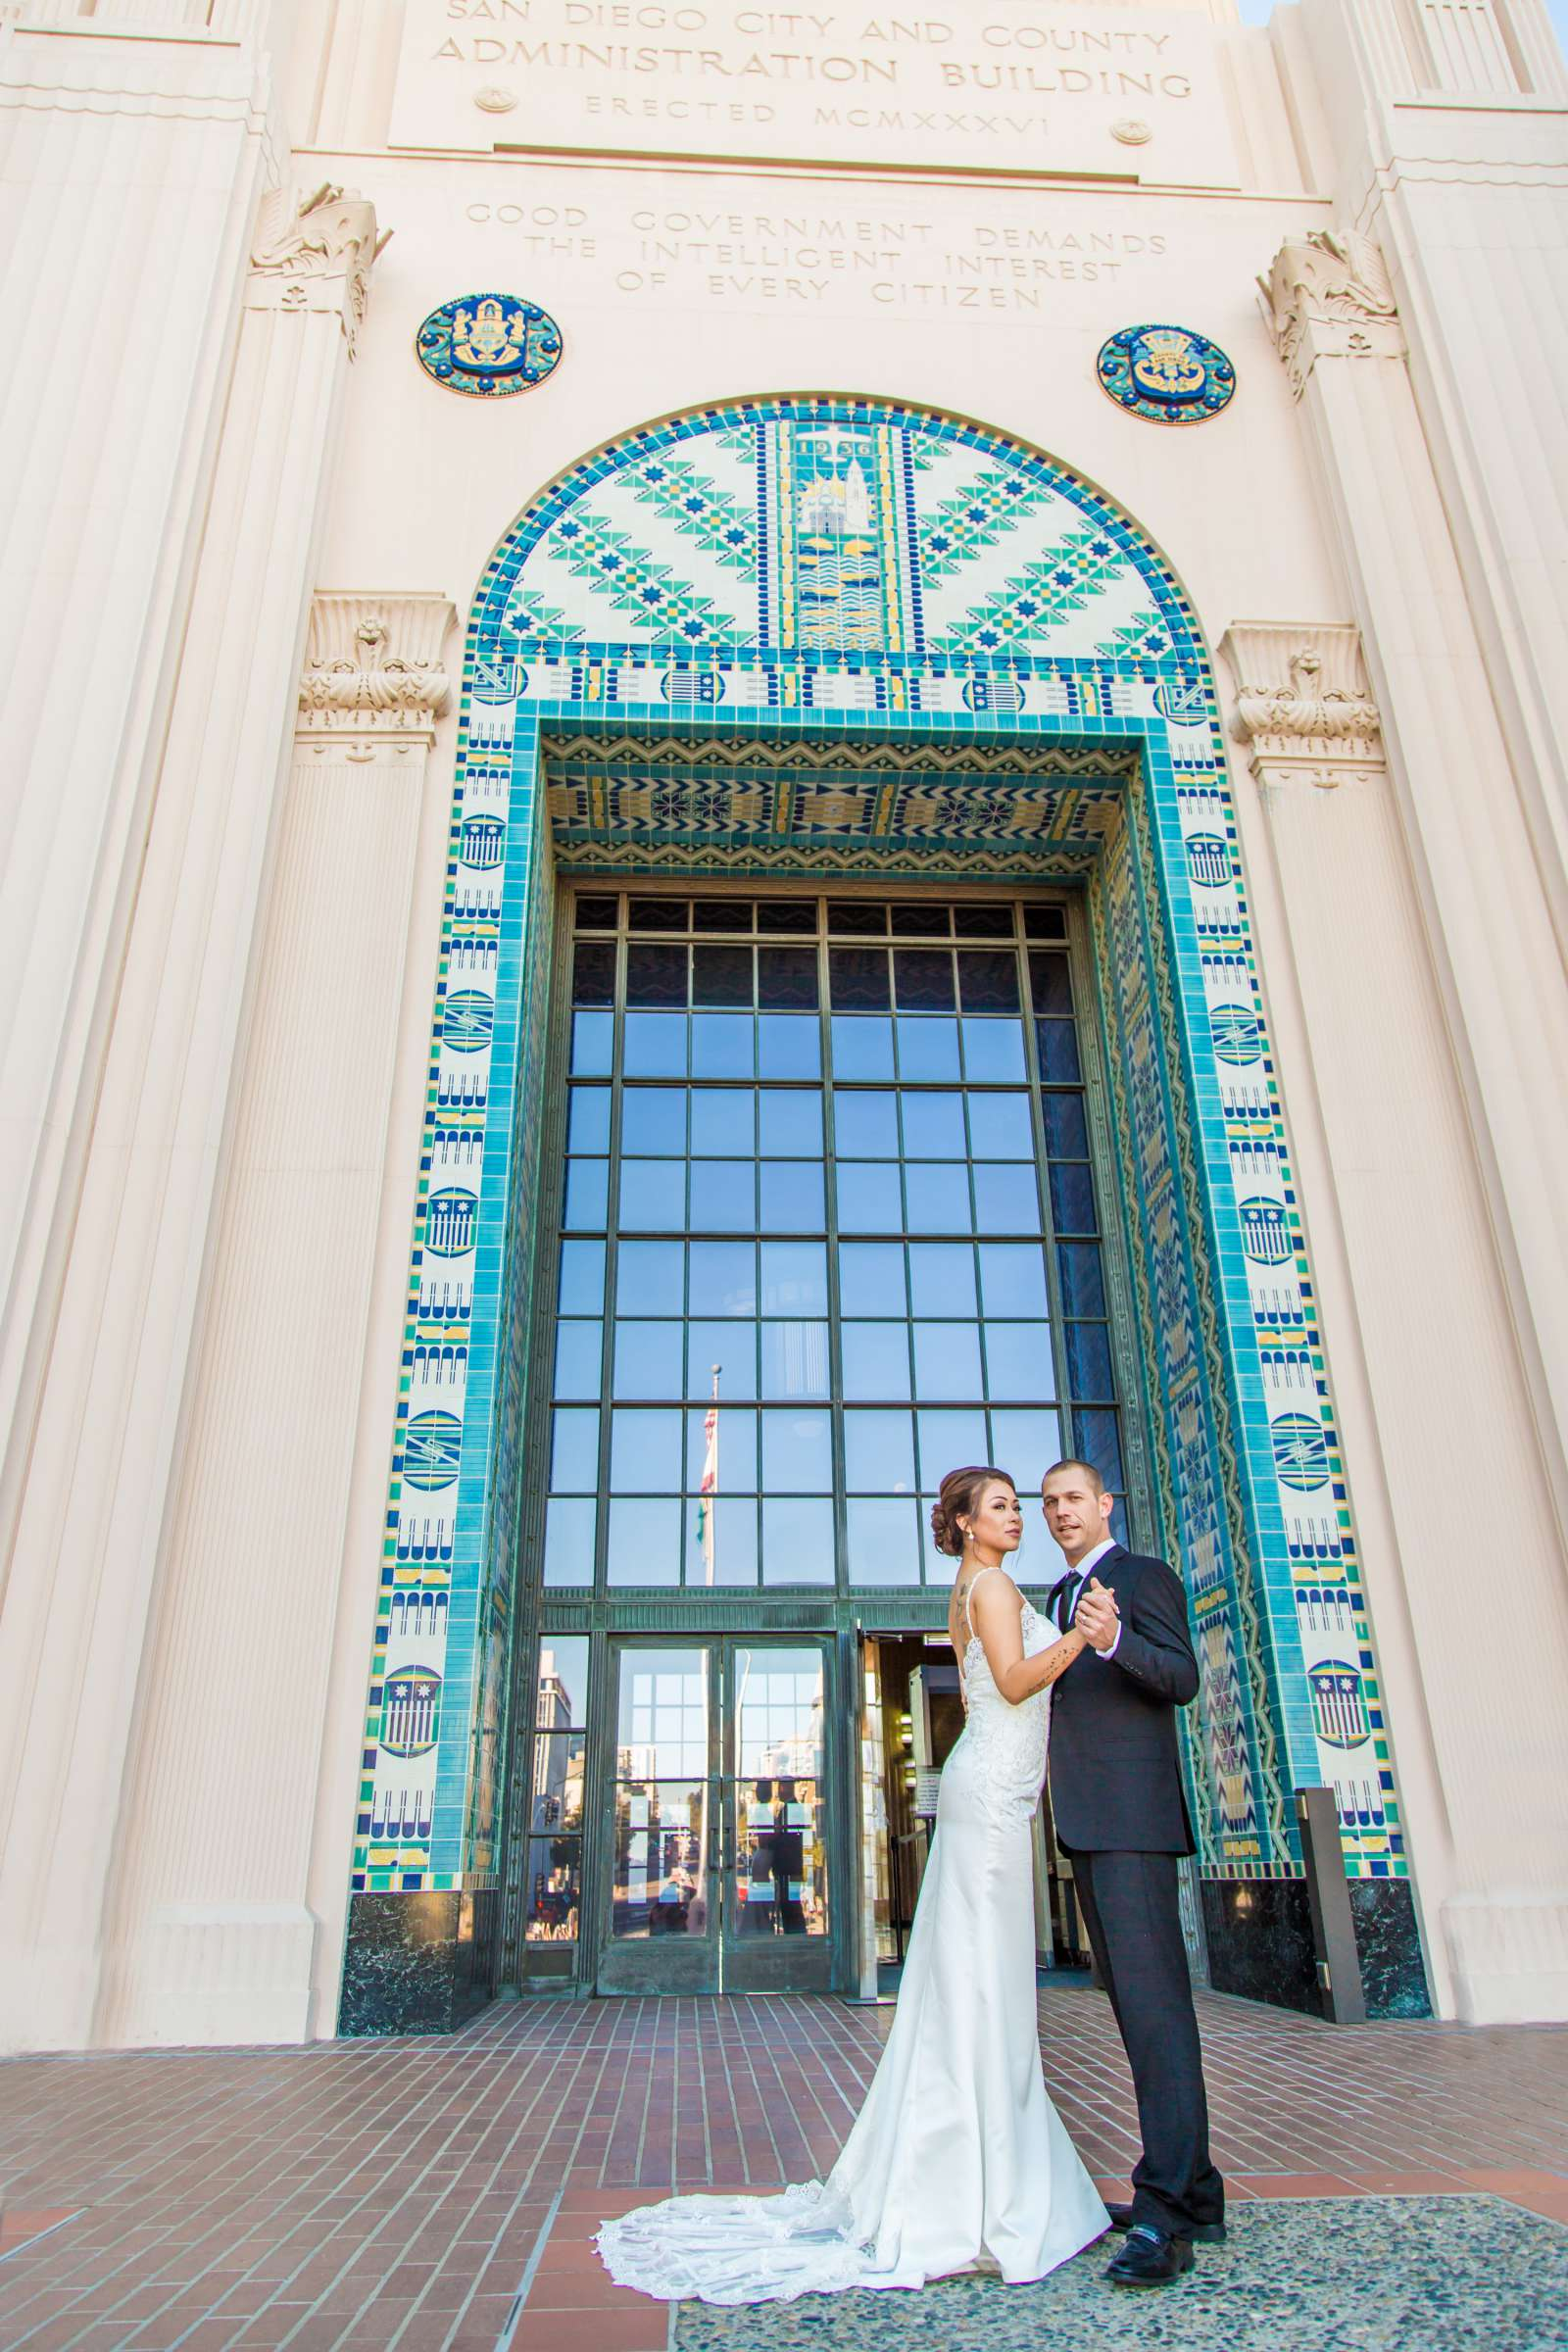 Wedding, Amber and Eric Wedding Photo #3 by True Photography